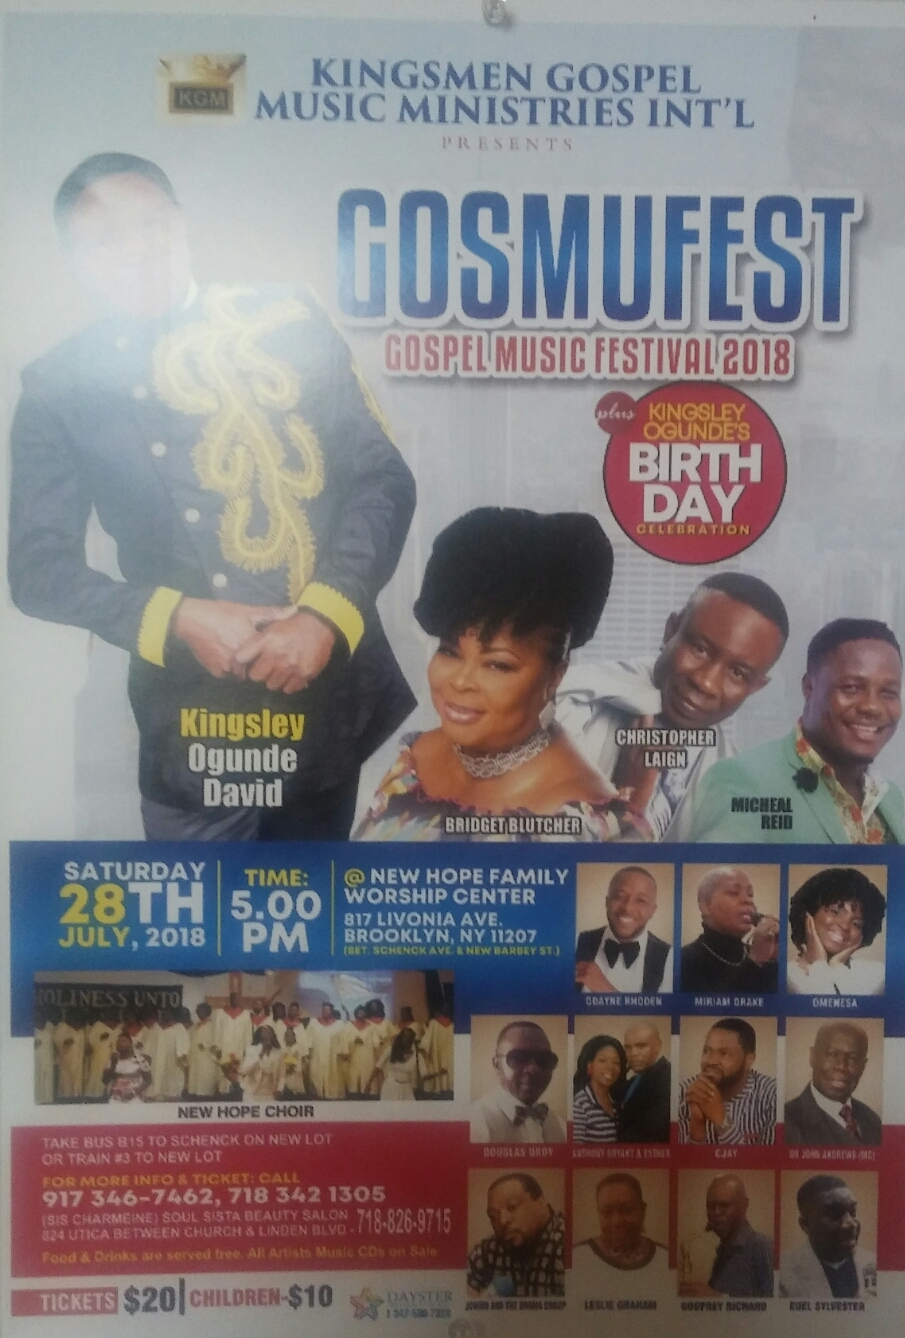 GOSMUFEST - Gospel Music Festival 2018 @ New Hope Family Worship Center